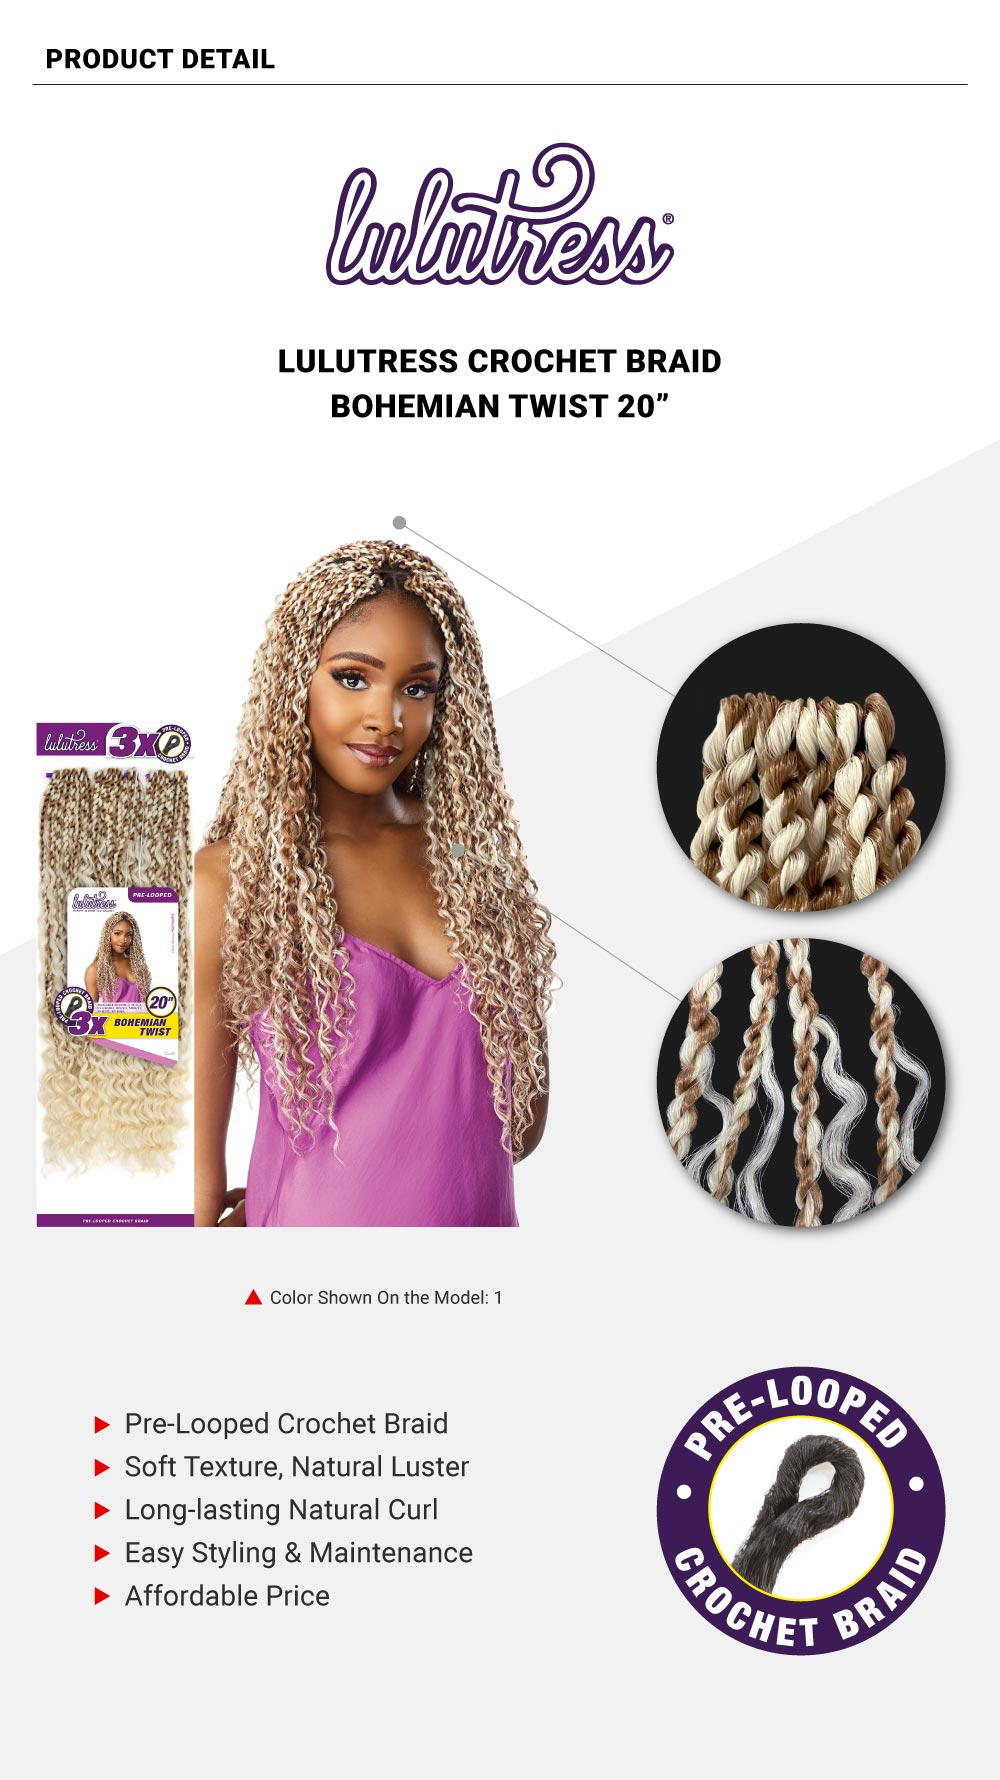 Sensationnel-Lulutress-Crochet-Braid-3X-Bohemian-Twist-20""